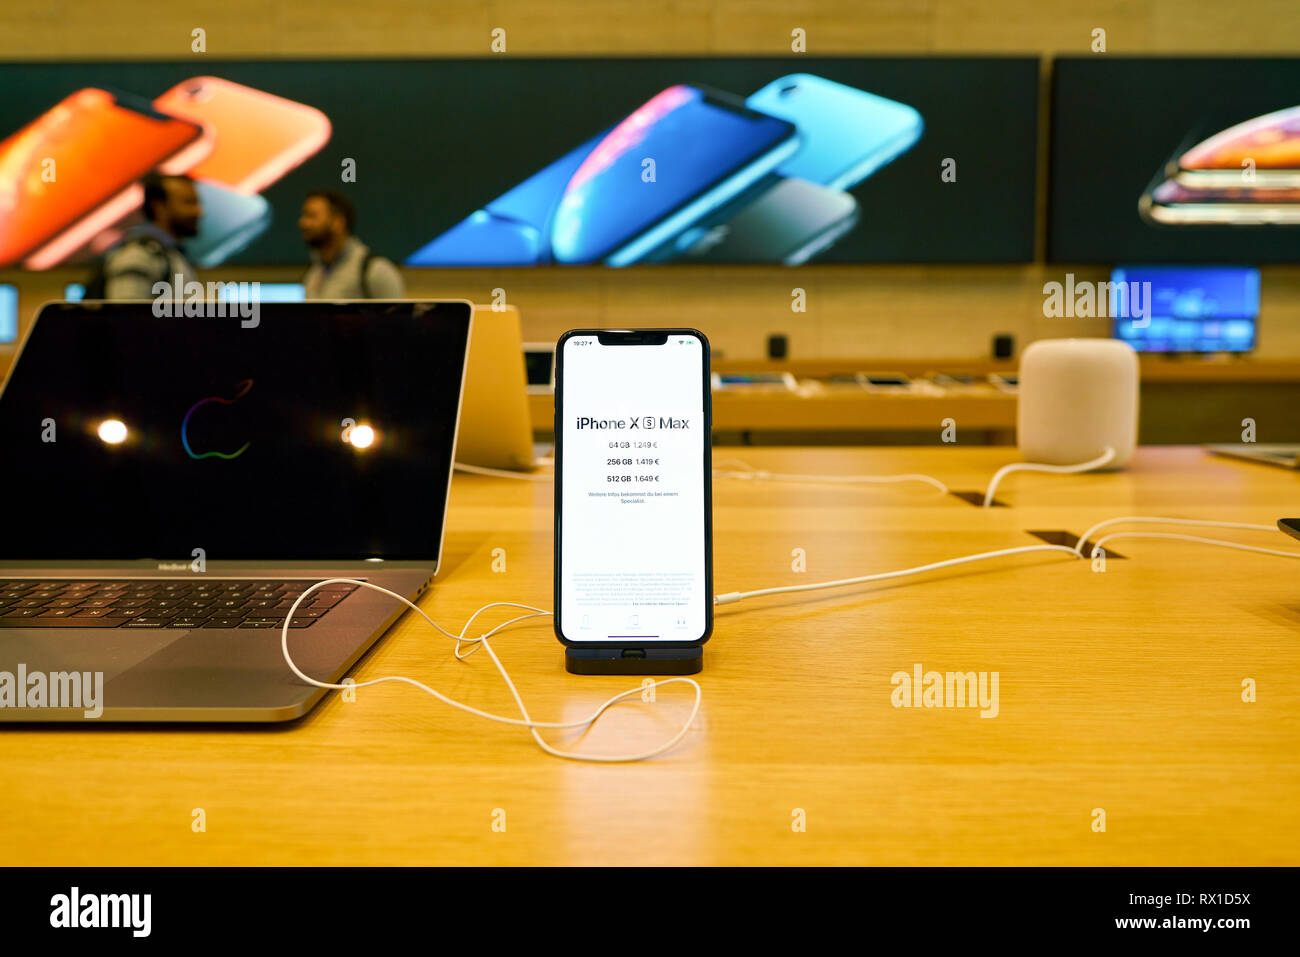 DUSSELDORF, GERMANY - CIRCA SEPTEMBER, 2018: MacBook Pro and iPhone XS Max on display at Apple store in Dusseldorf. - Stock Image